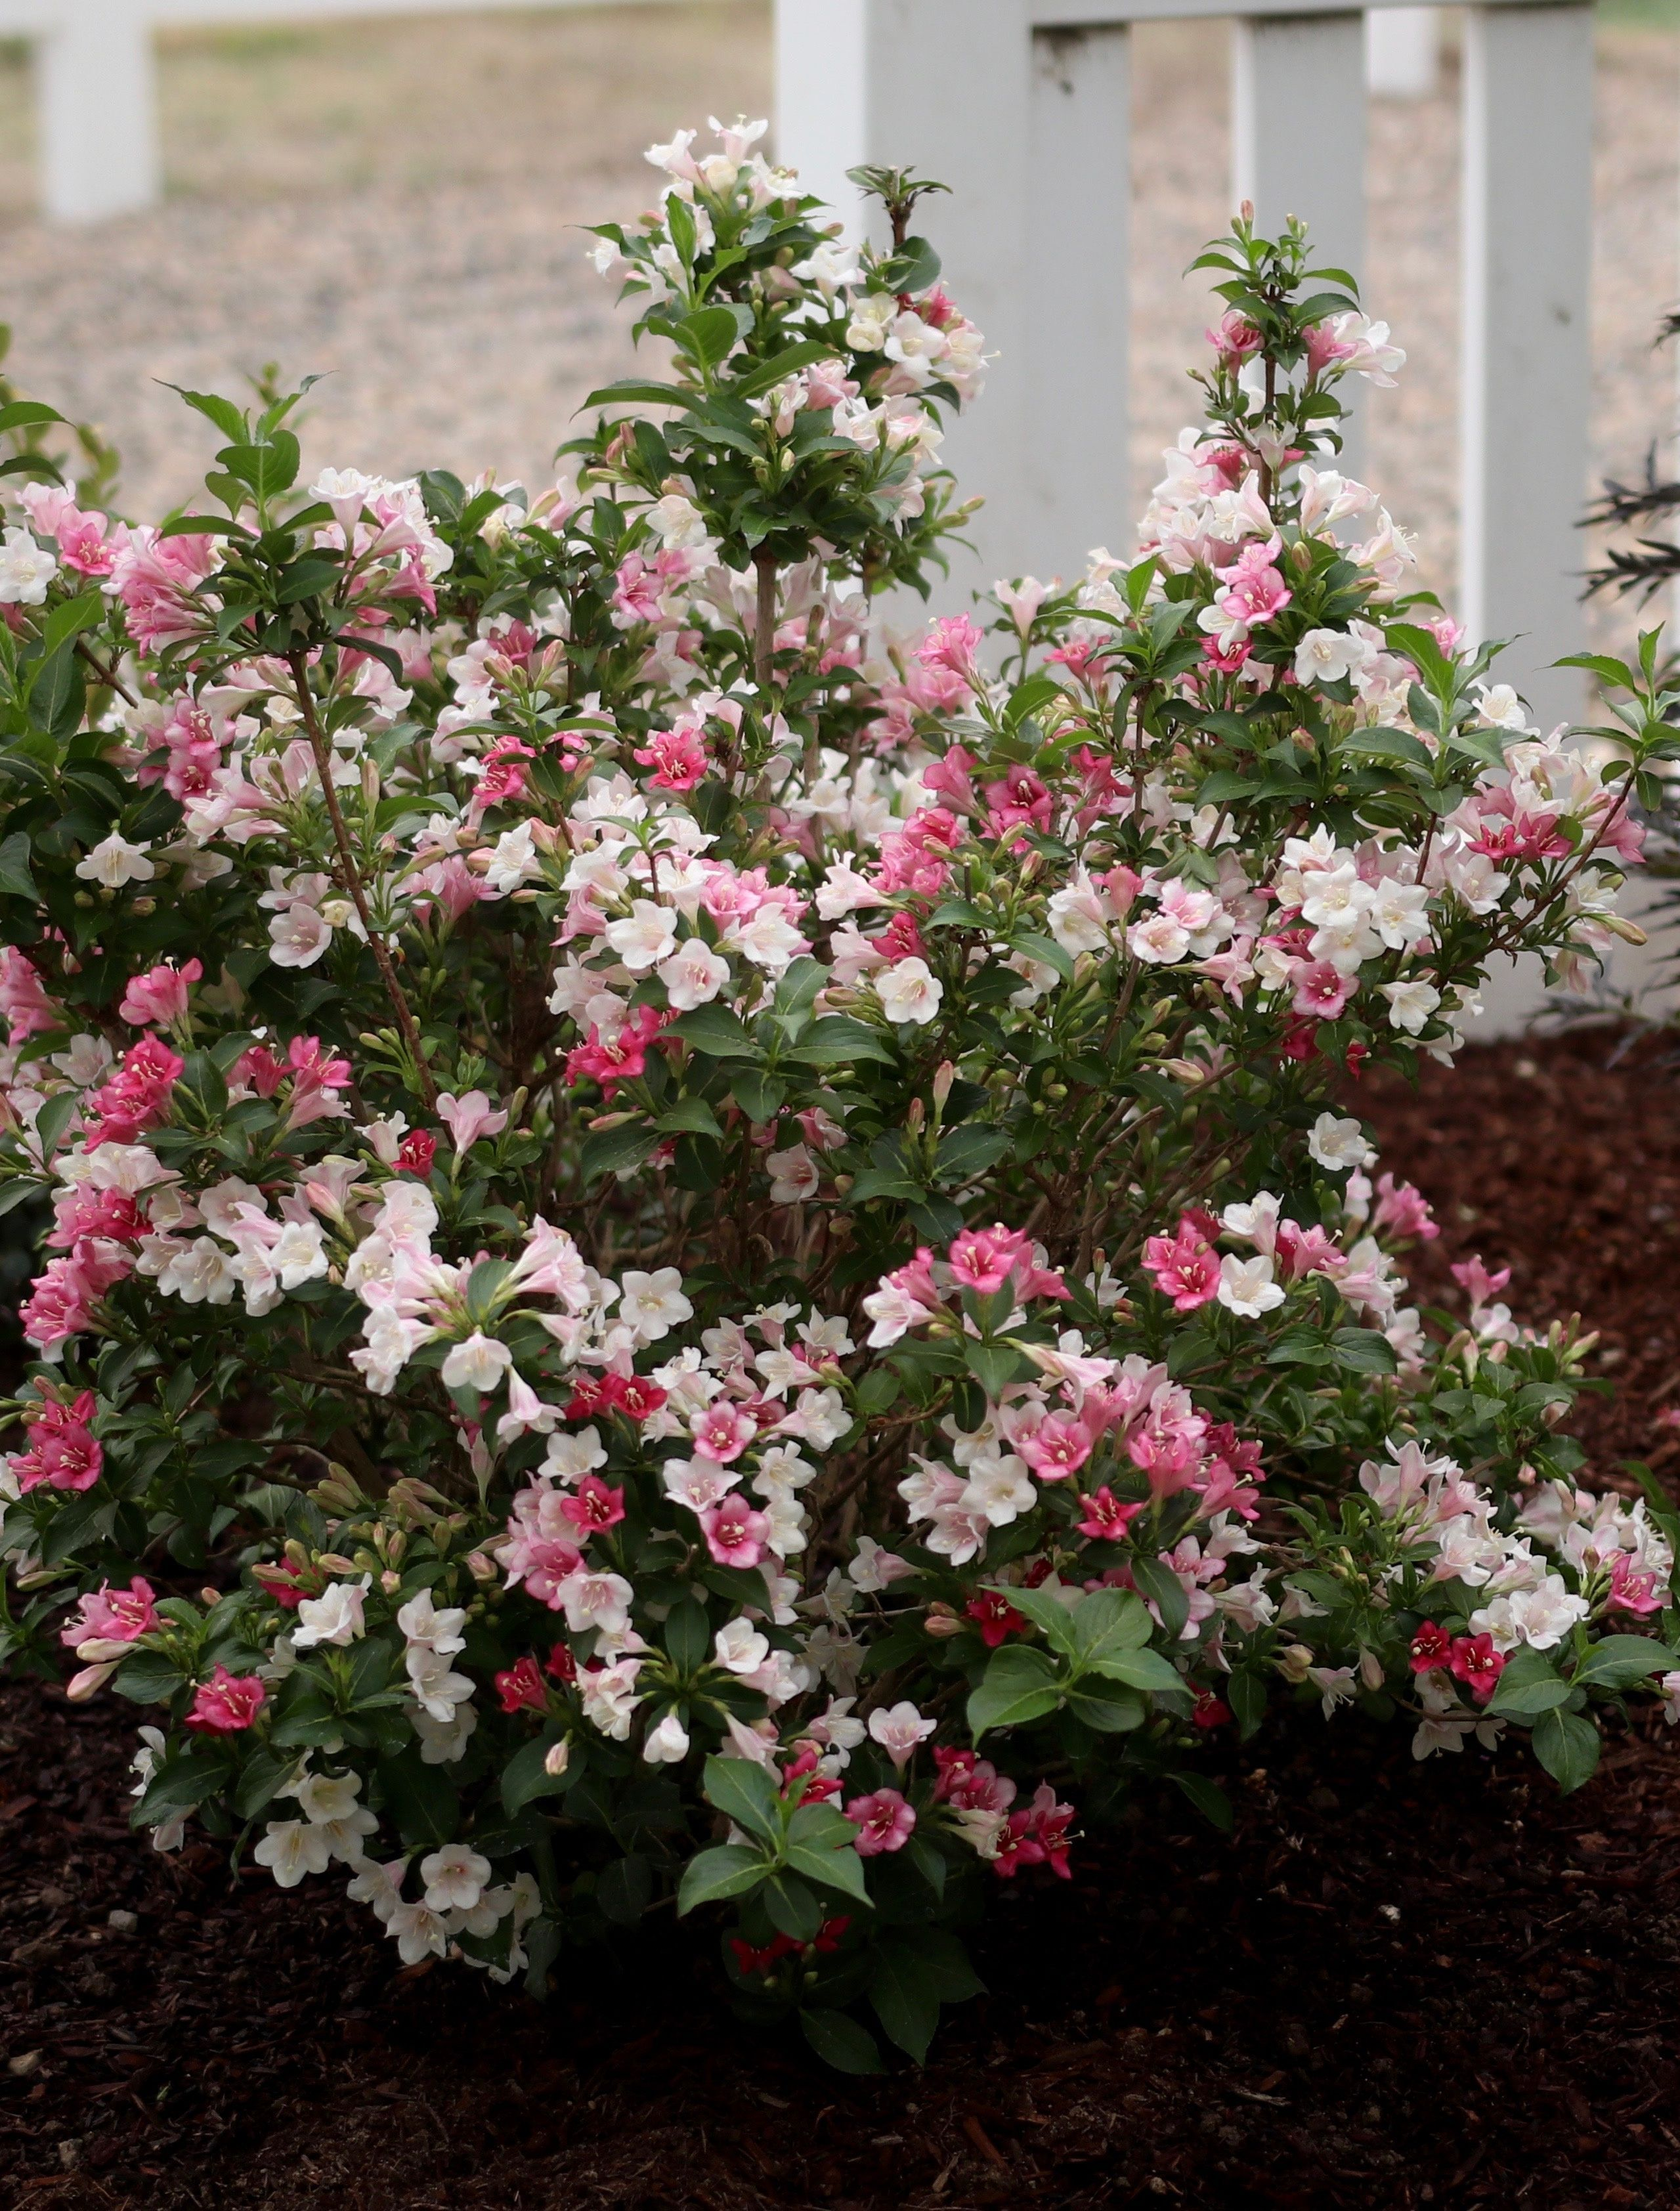 Lantana Kopen Czechmark Trilogy Weigela Florida Plants For Spring Color